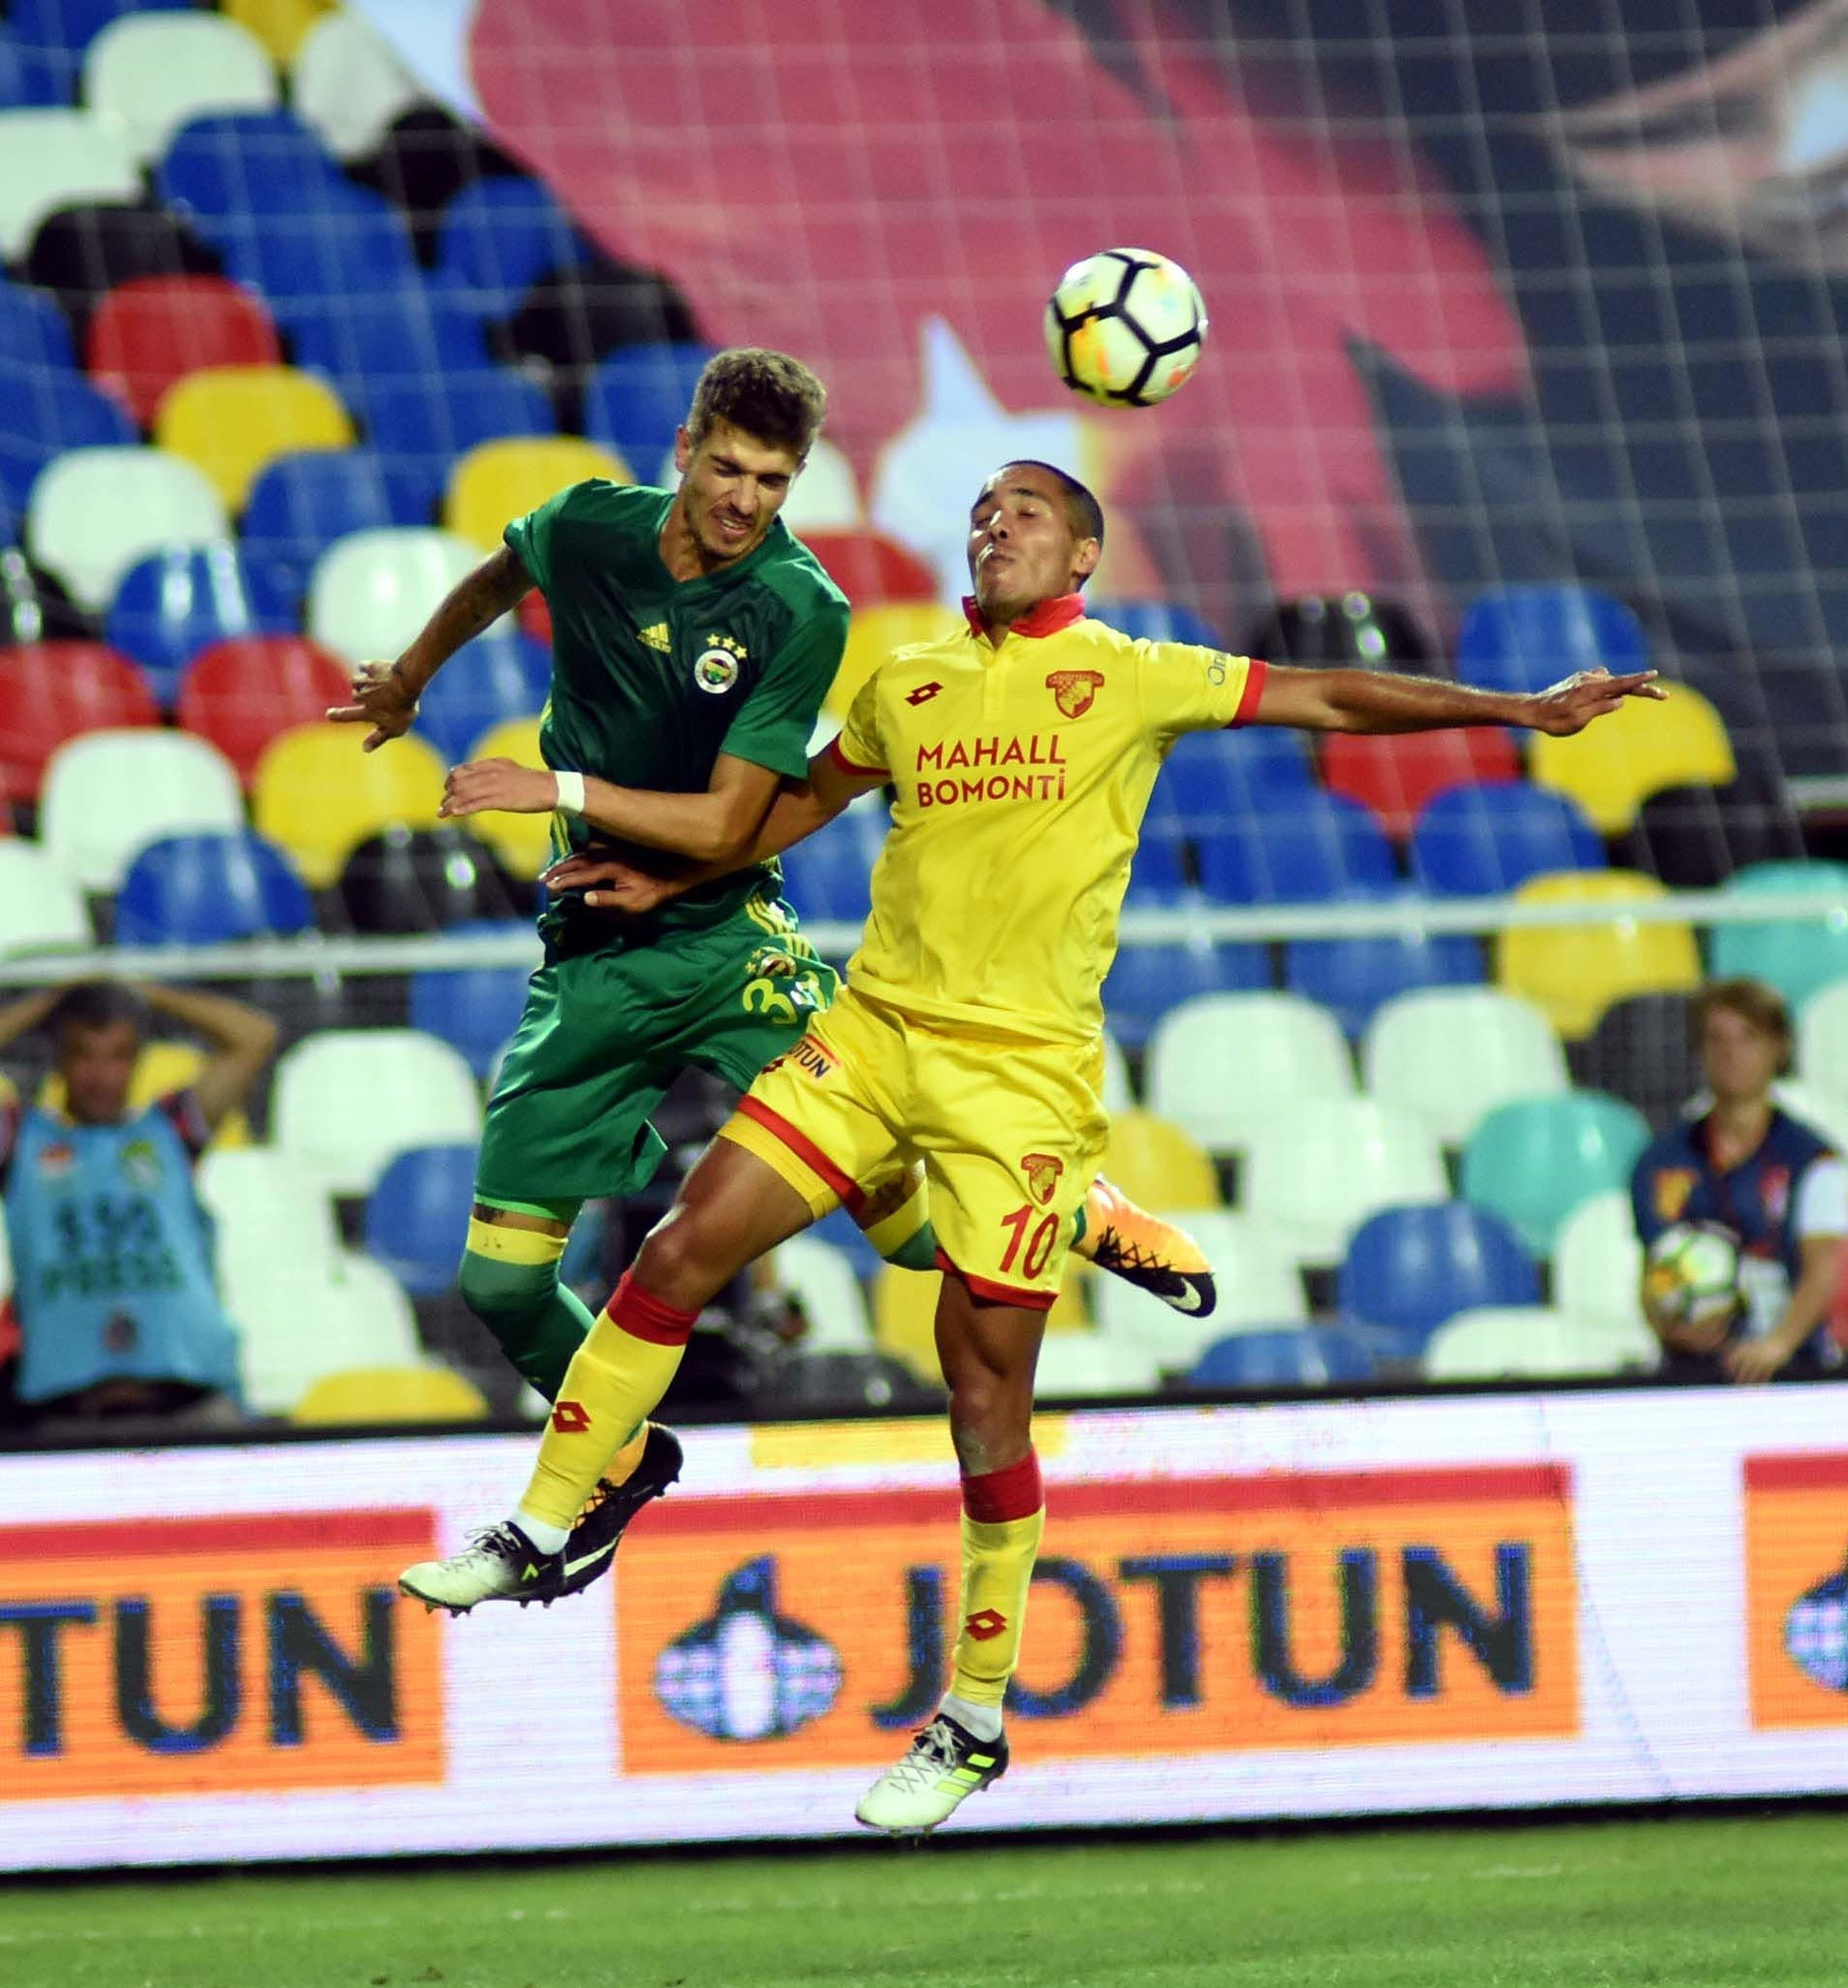 Fenerbahu00e7e, for the fourth time in the last six seasons, failed to win their opening game.